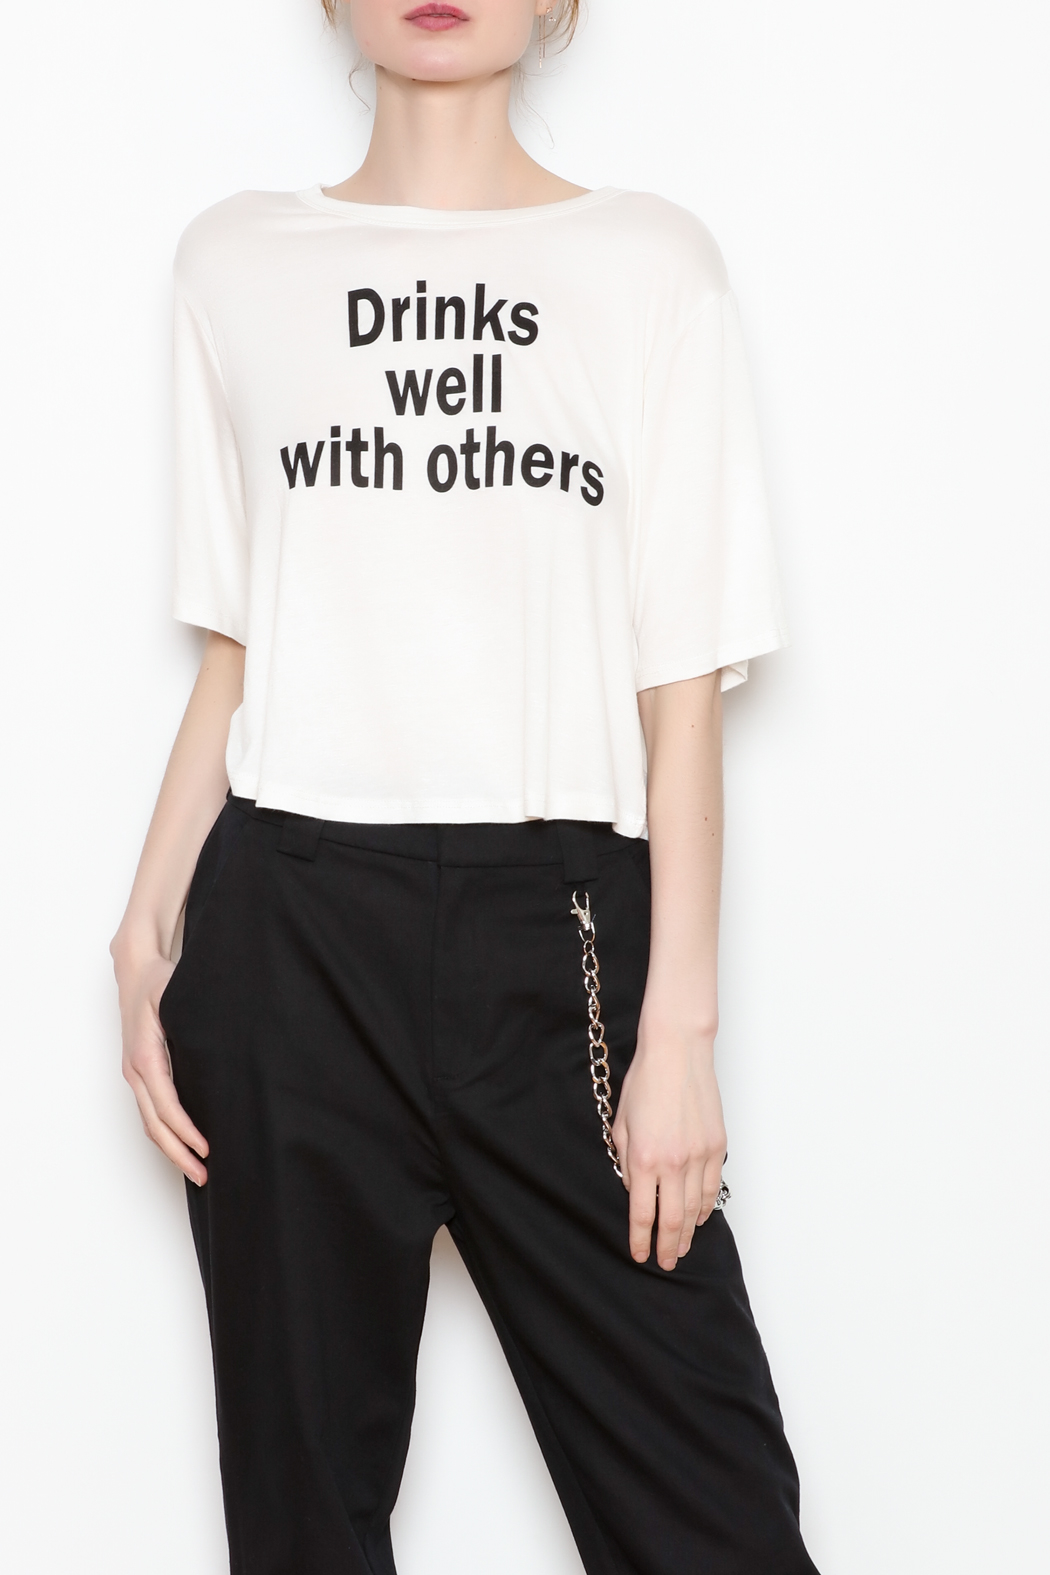 JC Fits Drinks Well With Others Tee - Main Image